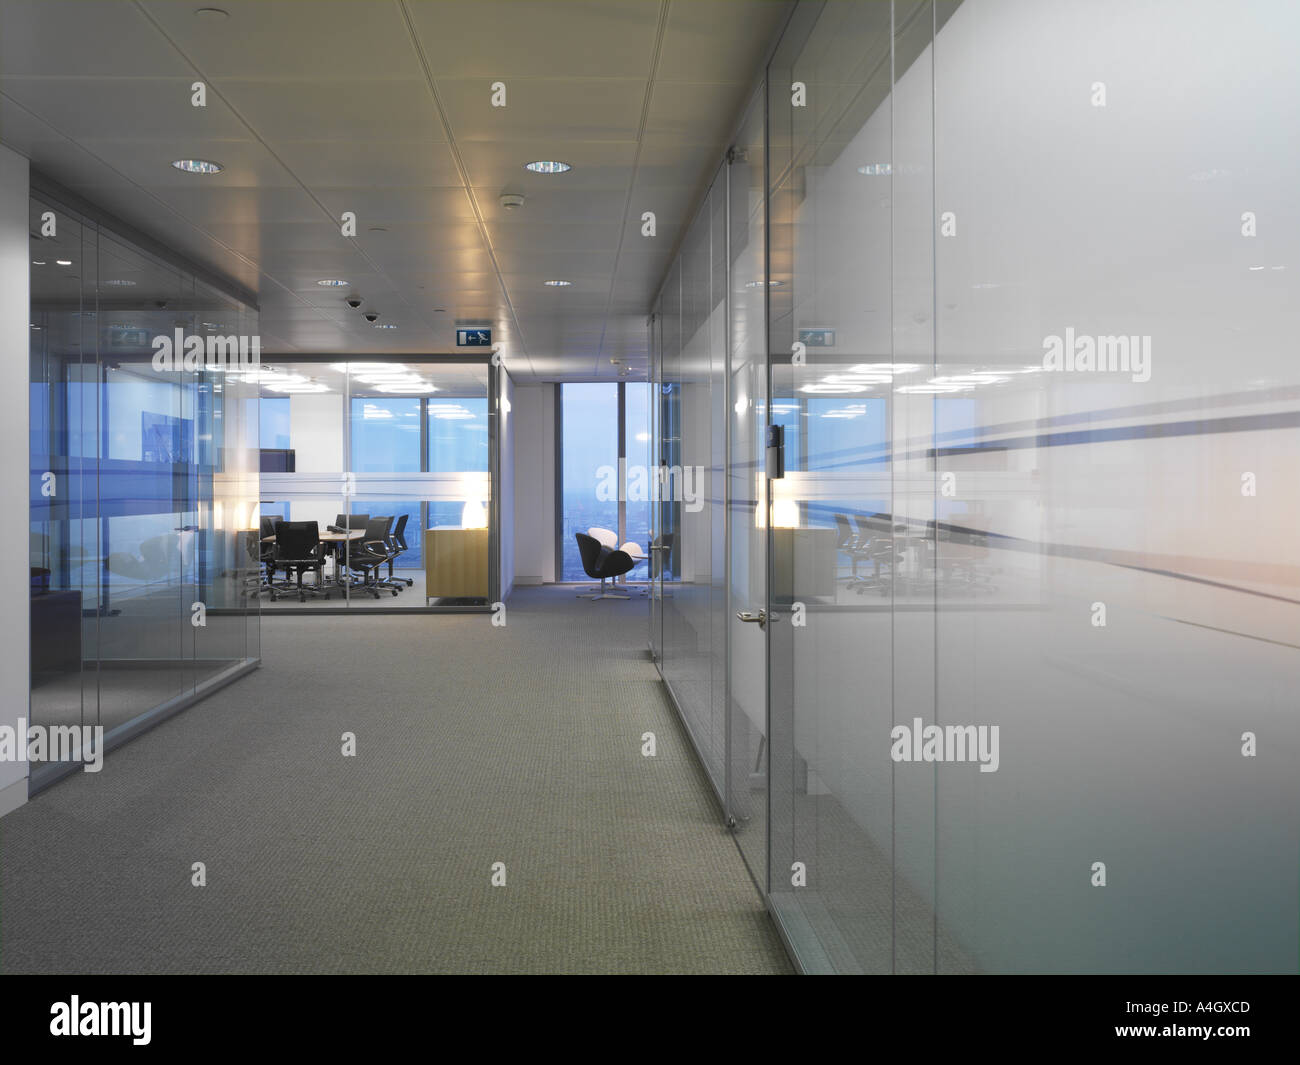 BARCLAYS CANARY WHARF, LONDON, UK Stock Photo: 3607244 - Alamy